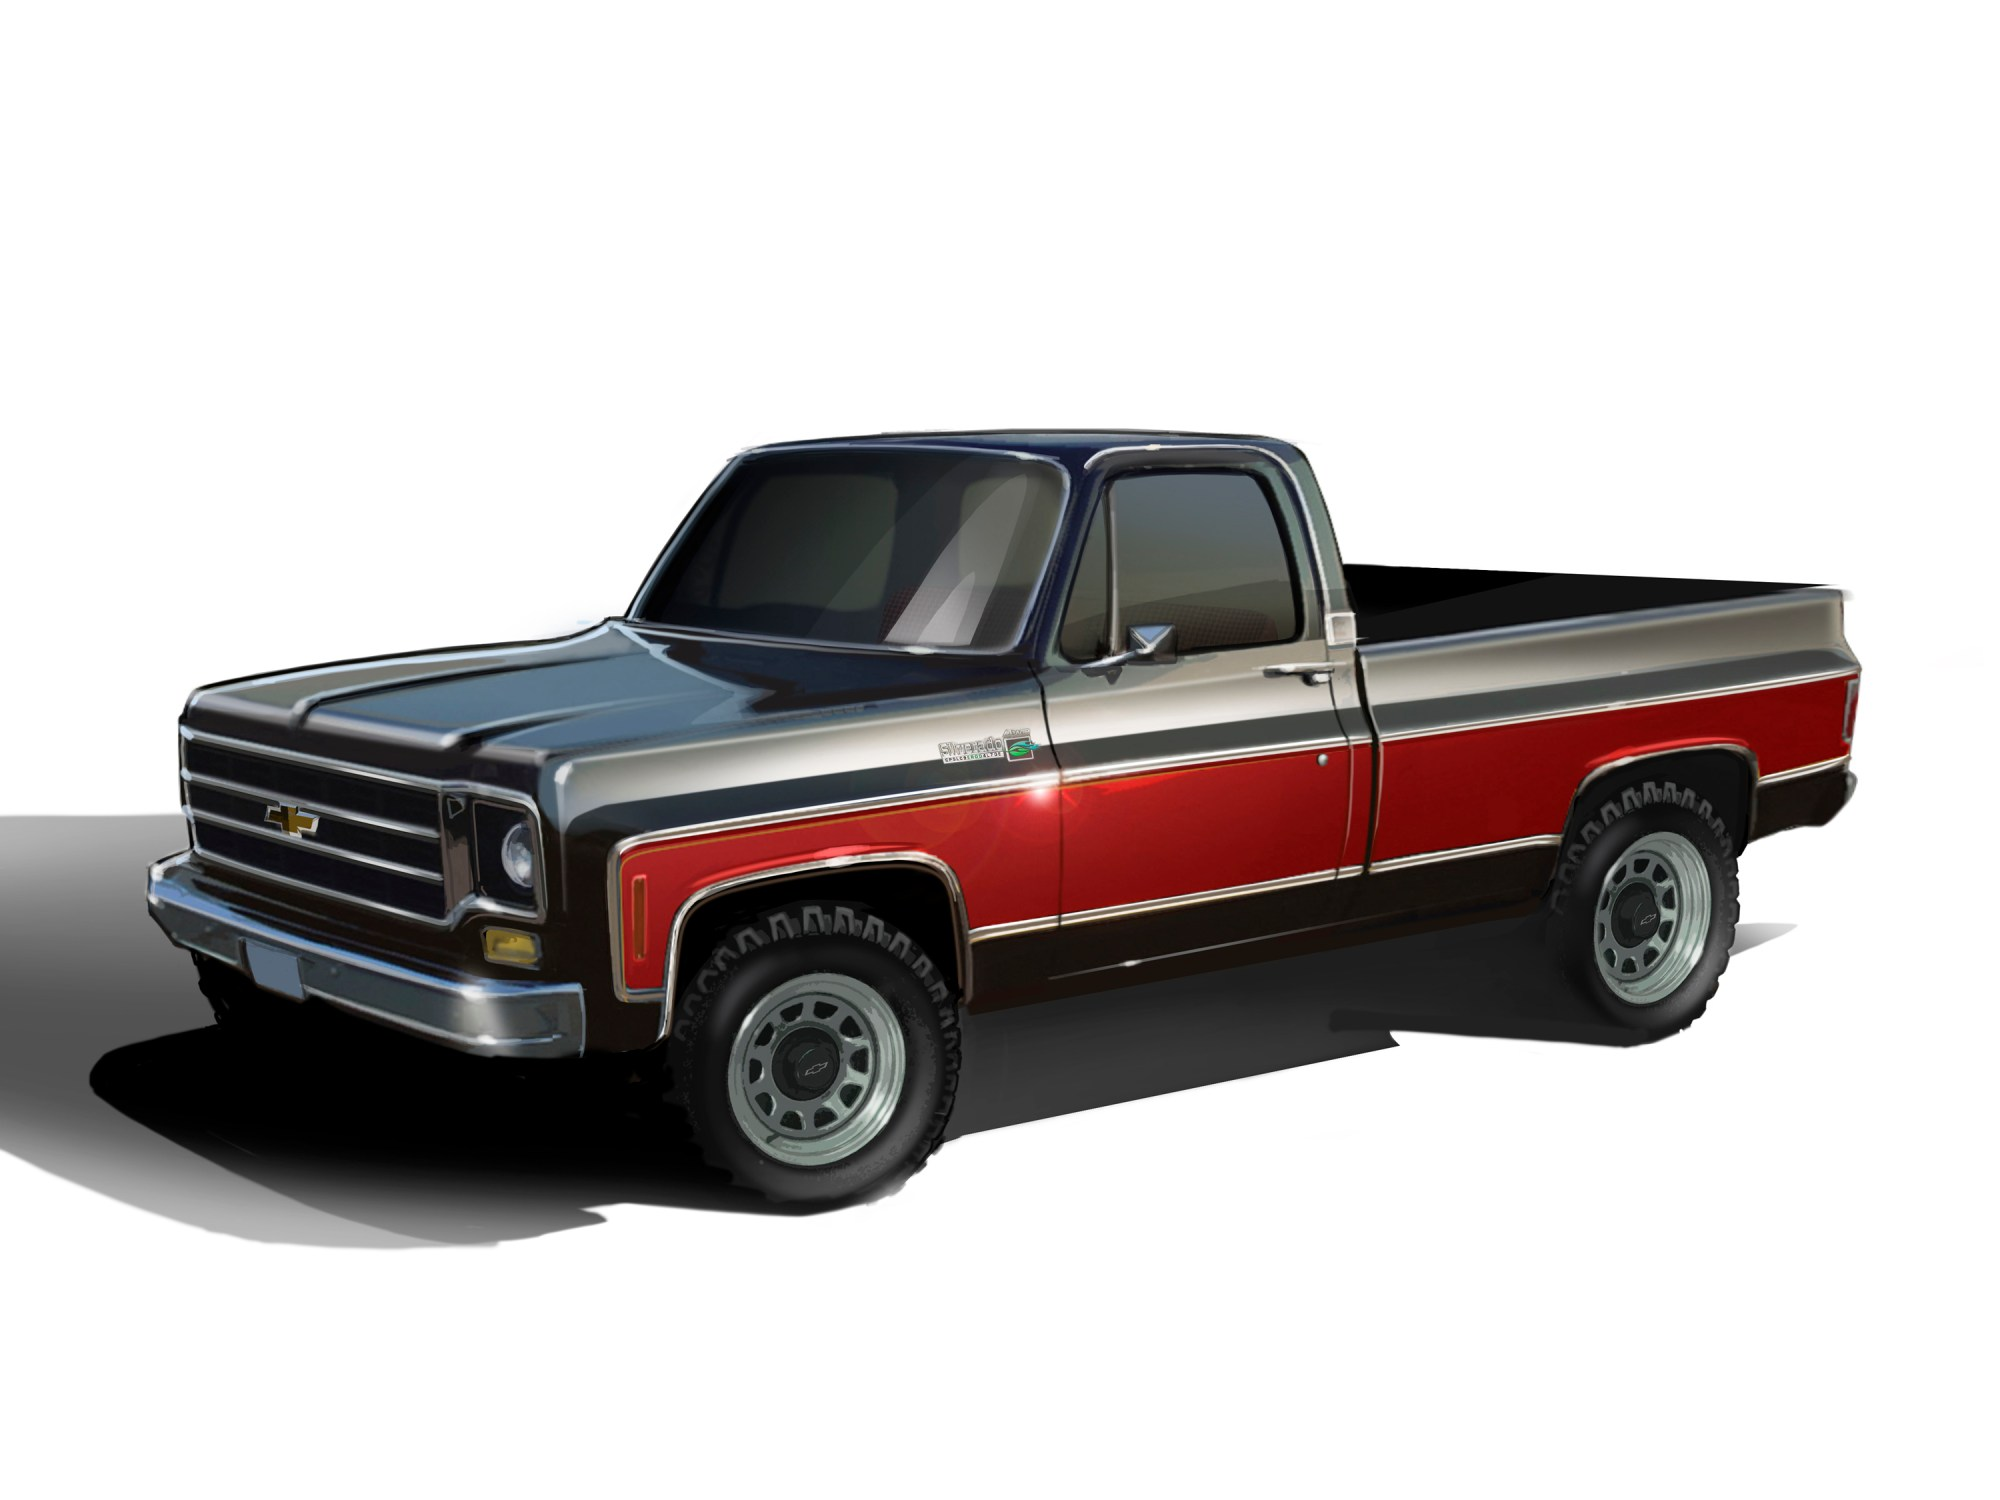 hight resolution of e rod powered 1978 chevy 4x4 combines classic style with modern performance and emissions compliance